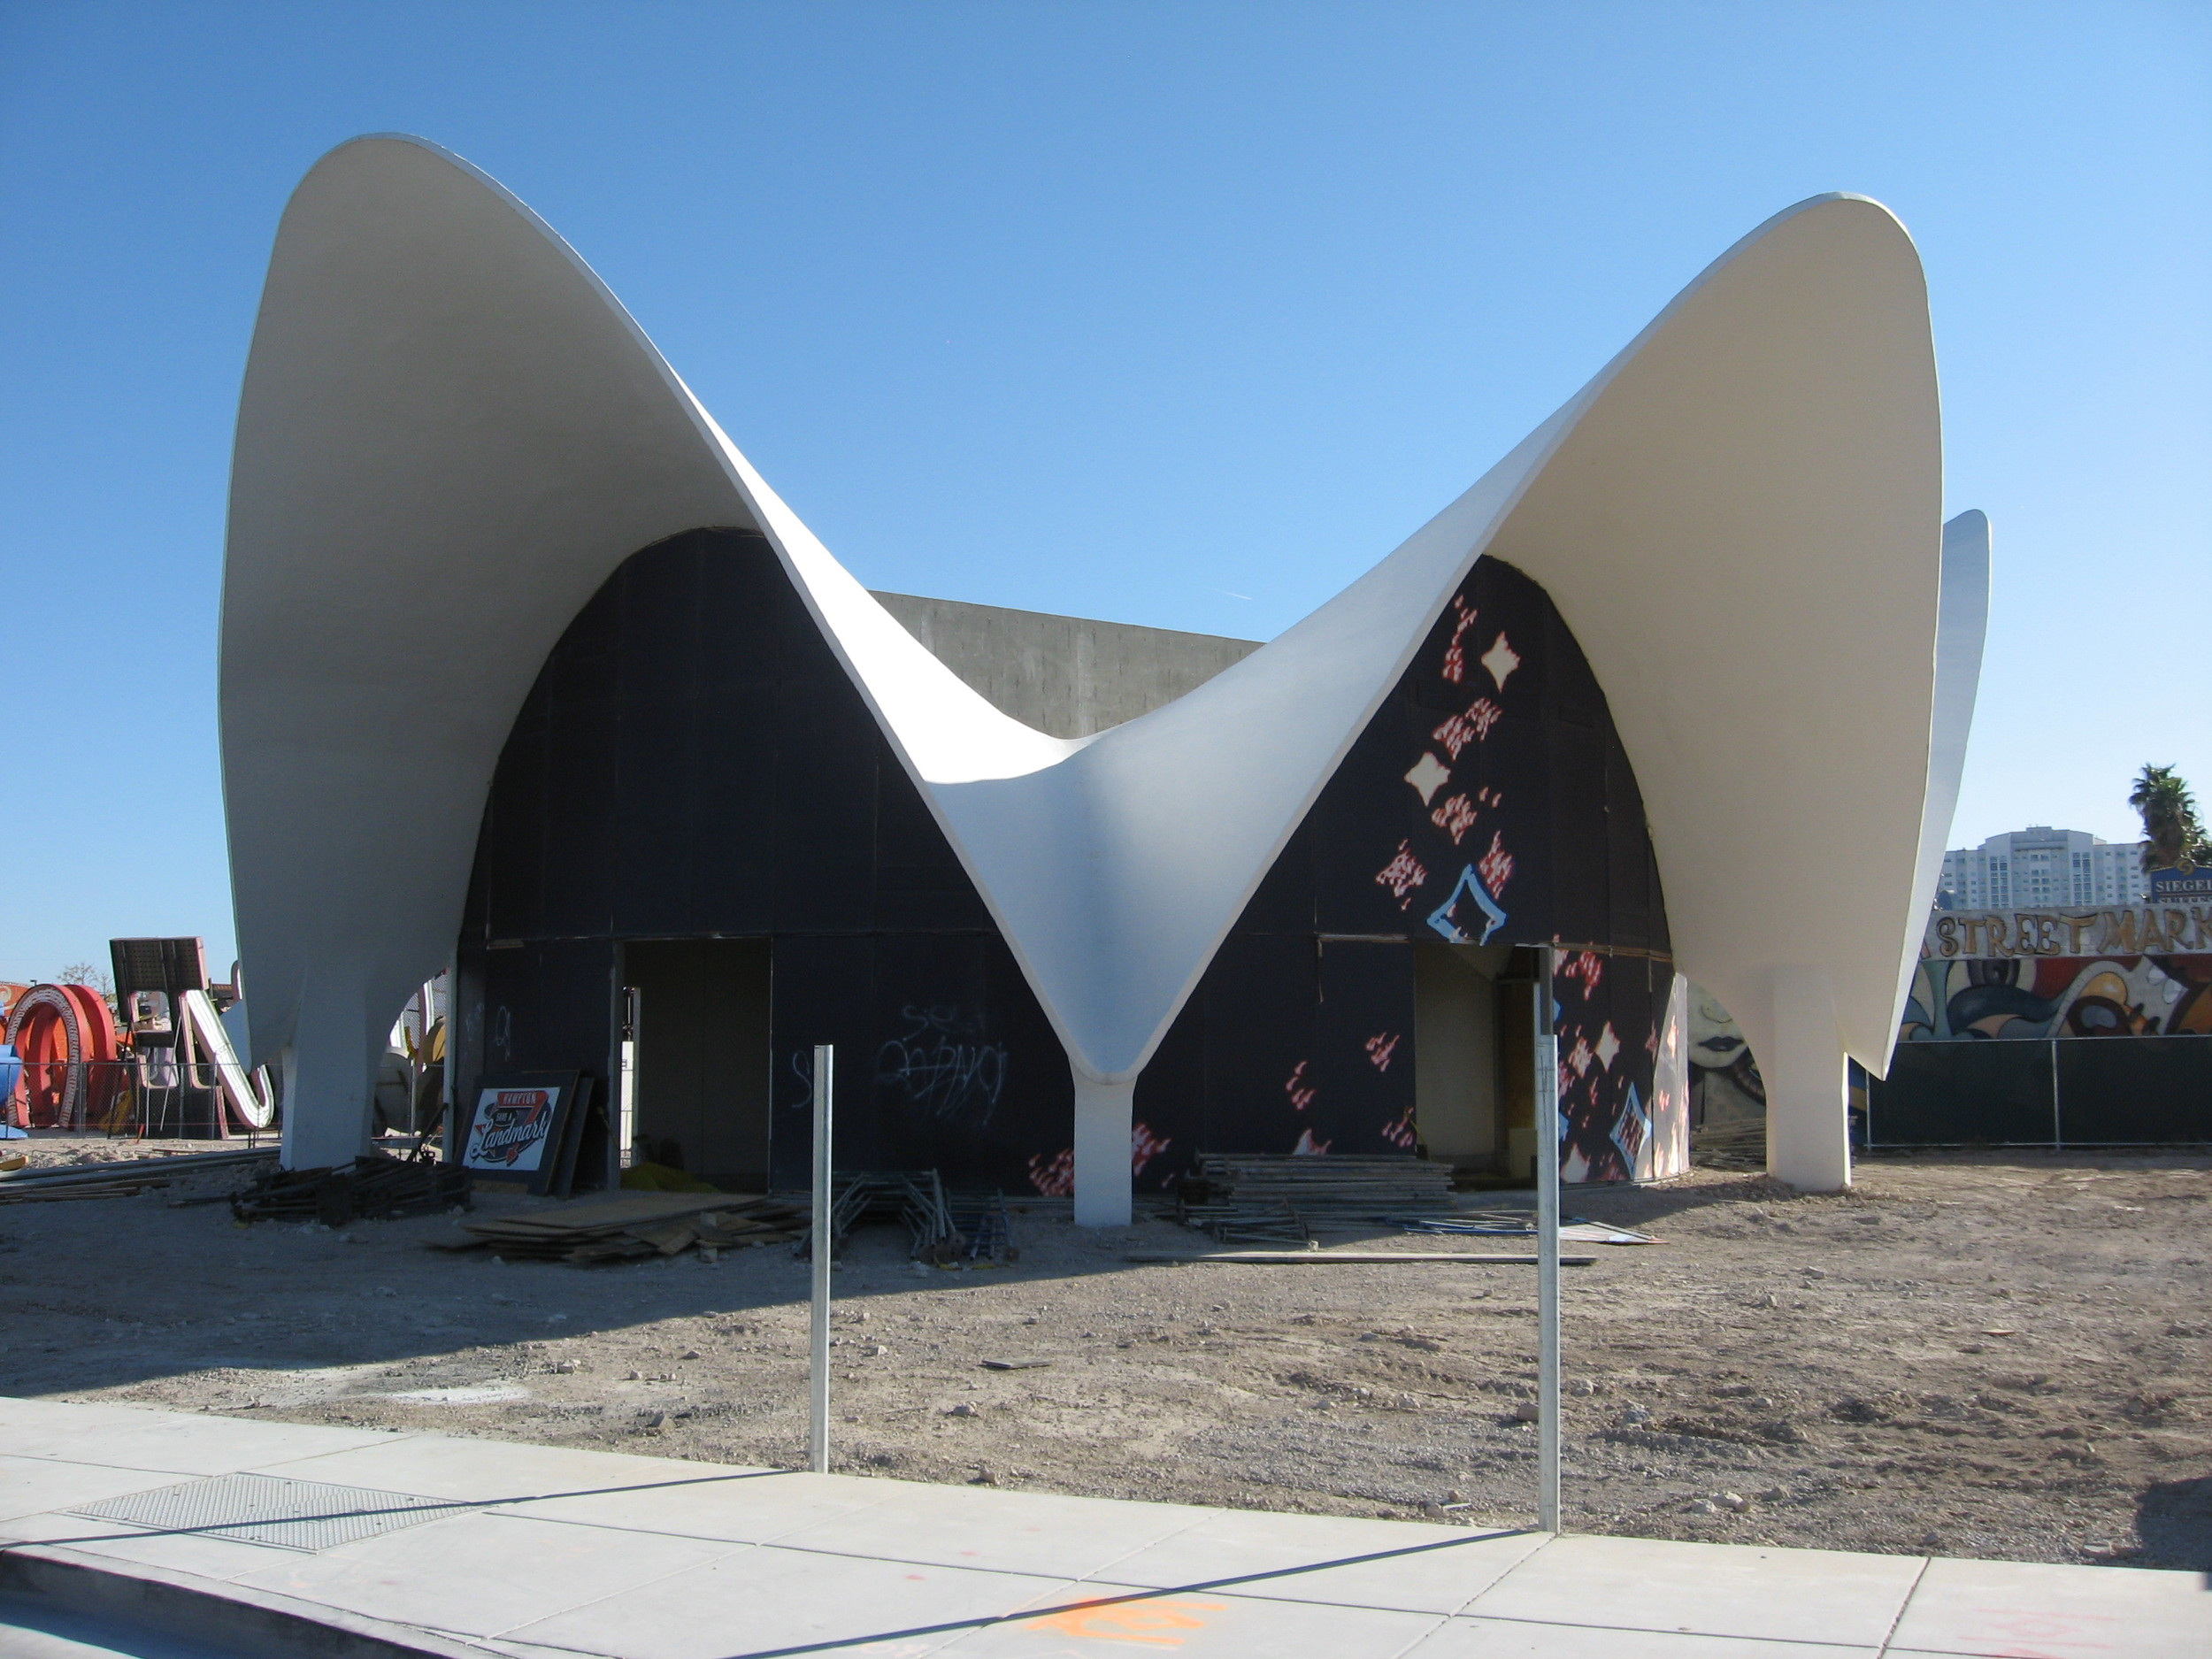 The Boneyard entrance is a wonderful mid-century modern building that is very inviting and memorable.